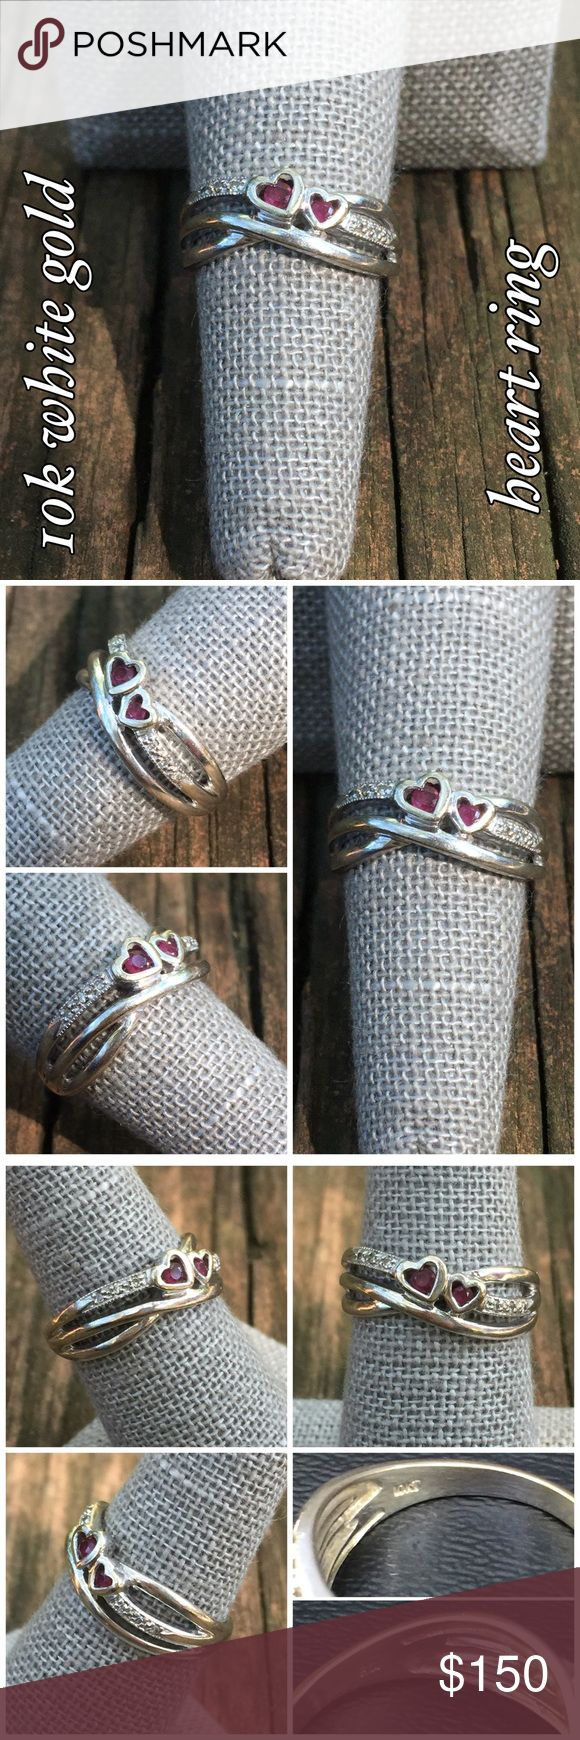 10k White Gold Vtg Ruby w/ Diamond Accents Ring Beautiful 10k Solid White Gold Vintage Ruby & Diamond Accents Hearts Ring. Size 7. Marked 10k FD. The ring is in great vintage condition w/ some surface scratches (that could be buffed out if desired) all co